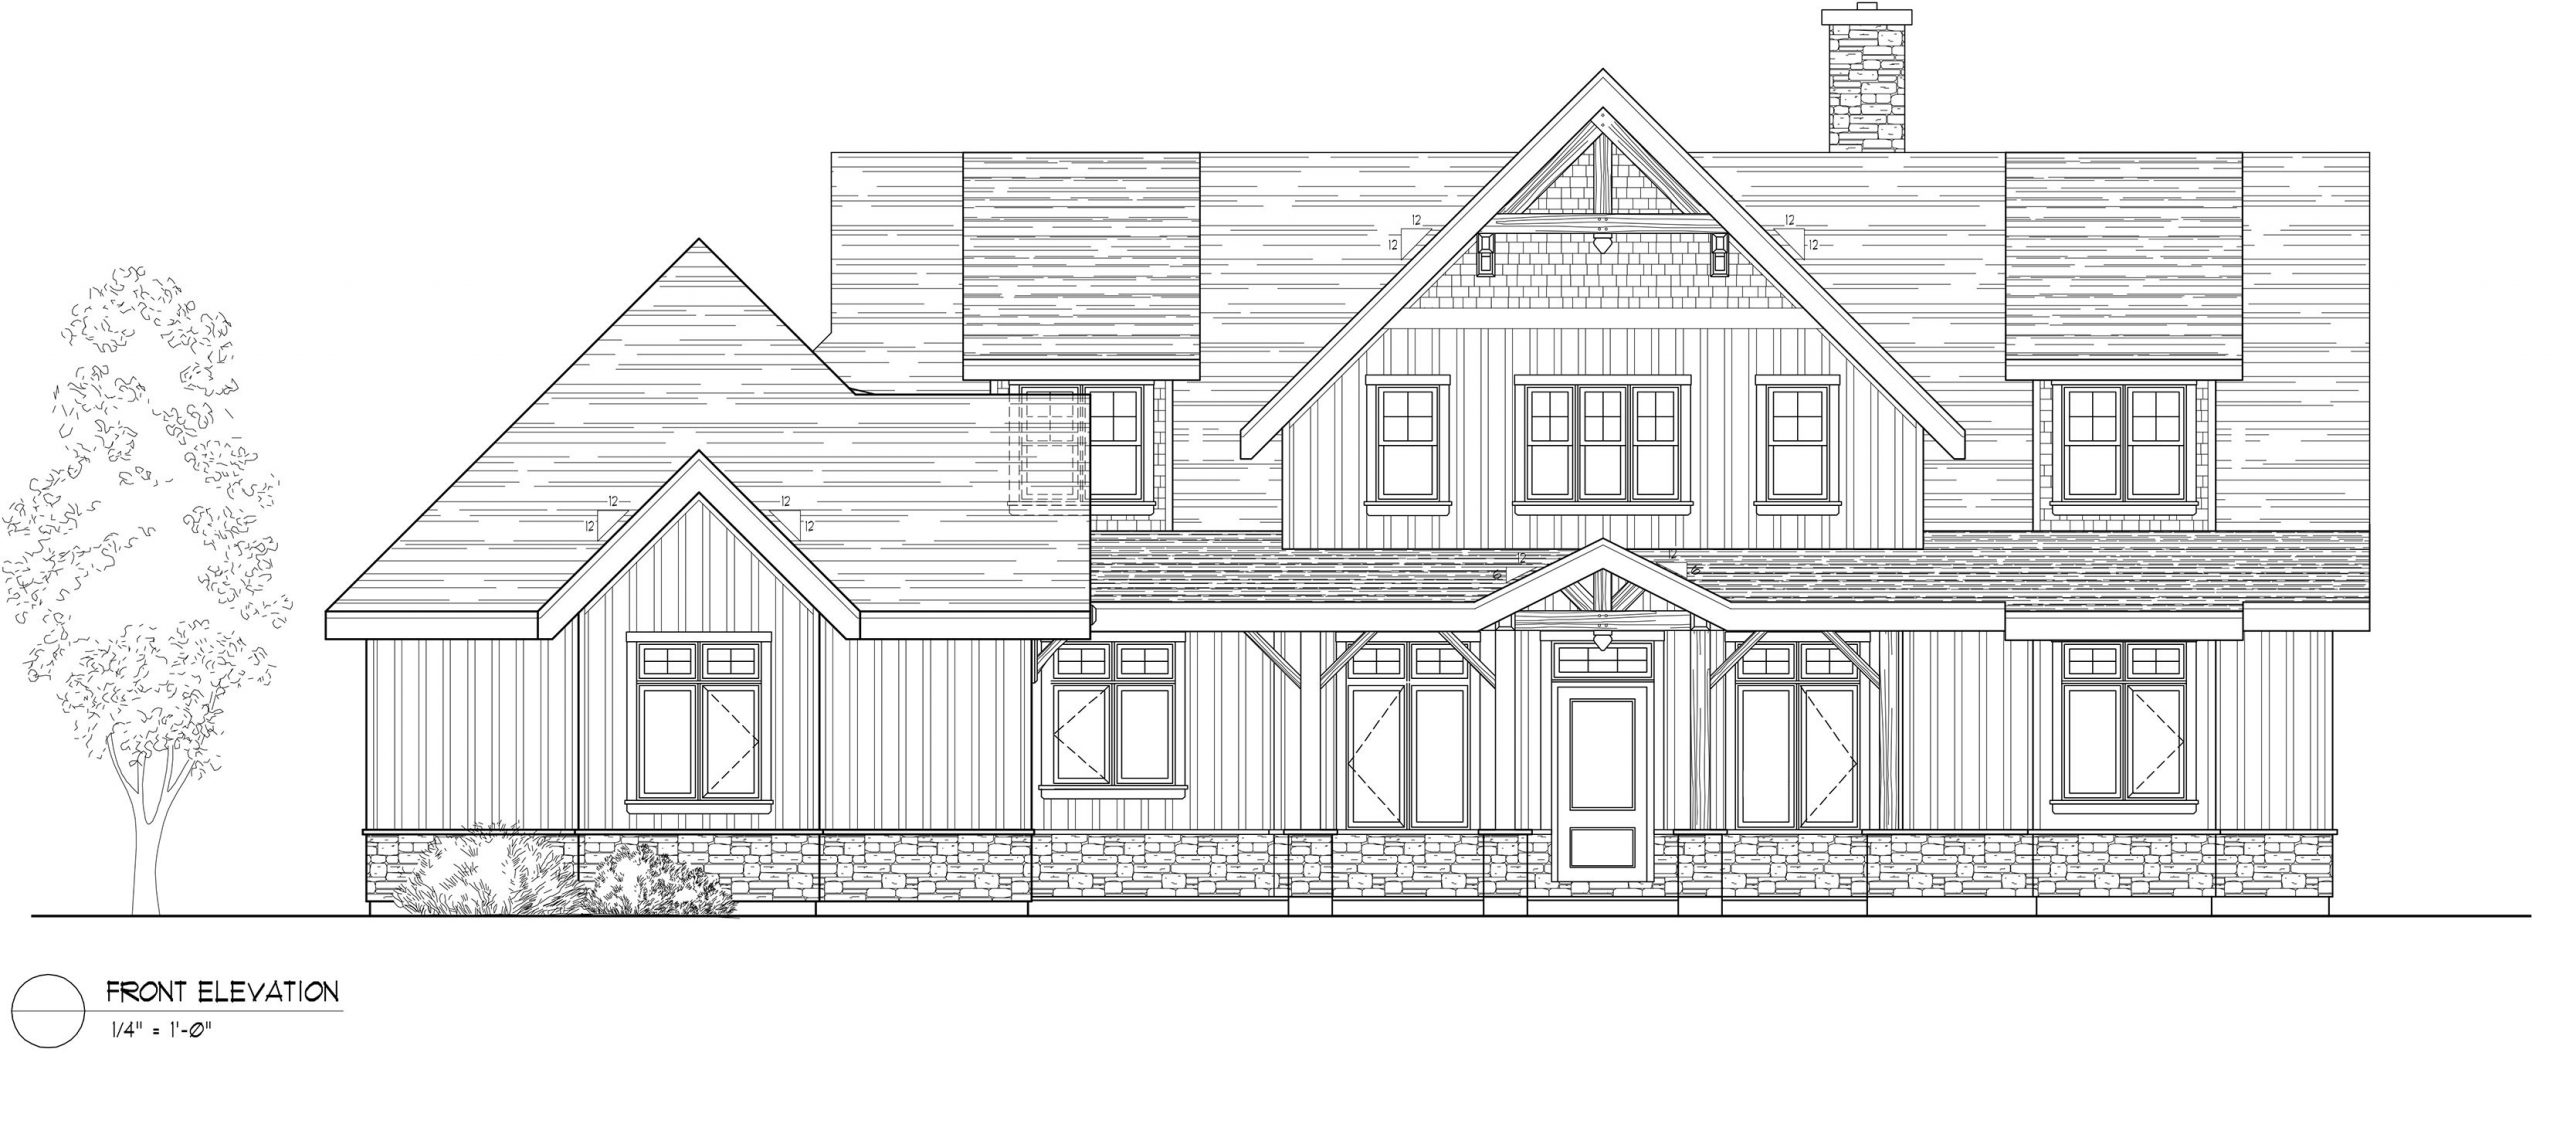 Normerica Timber Frames, House Plan, The Dufferin 2822, Front Elevation